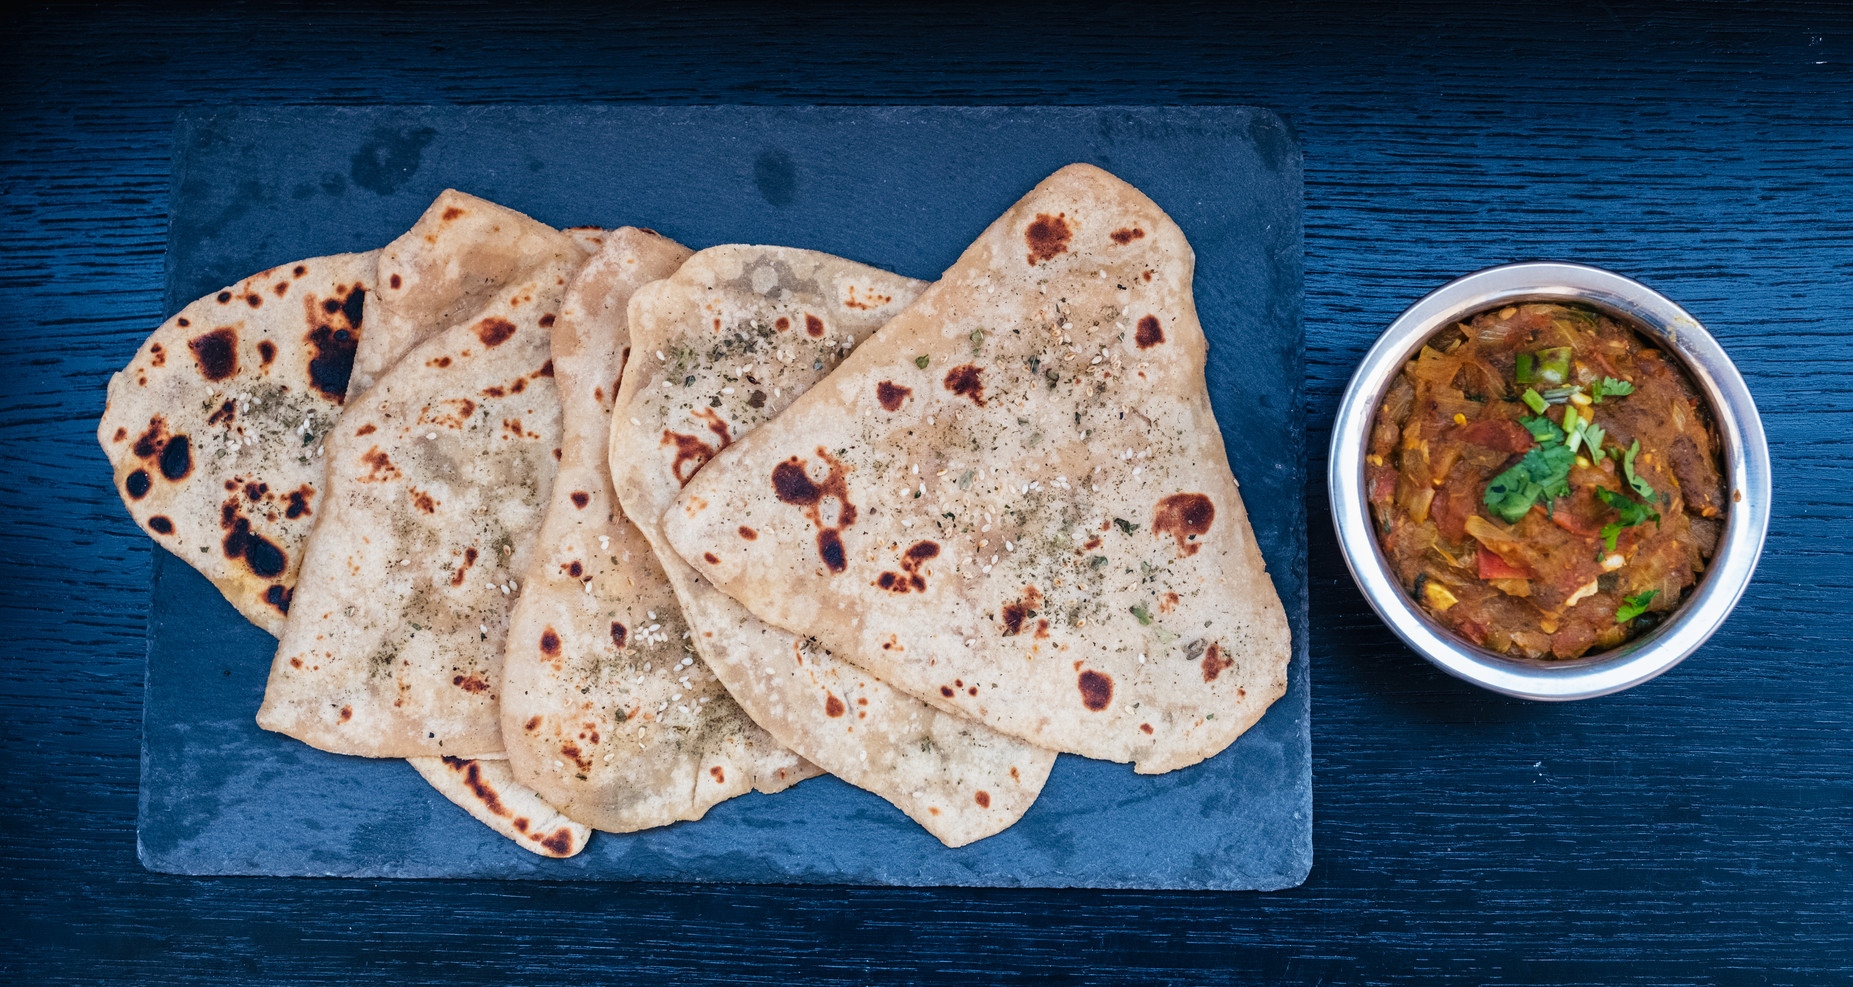 Baingan bhartha with chapati